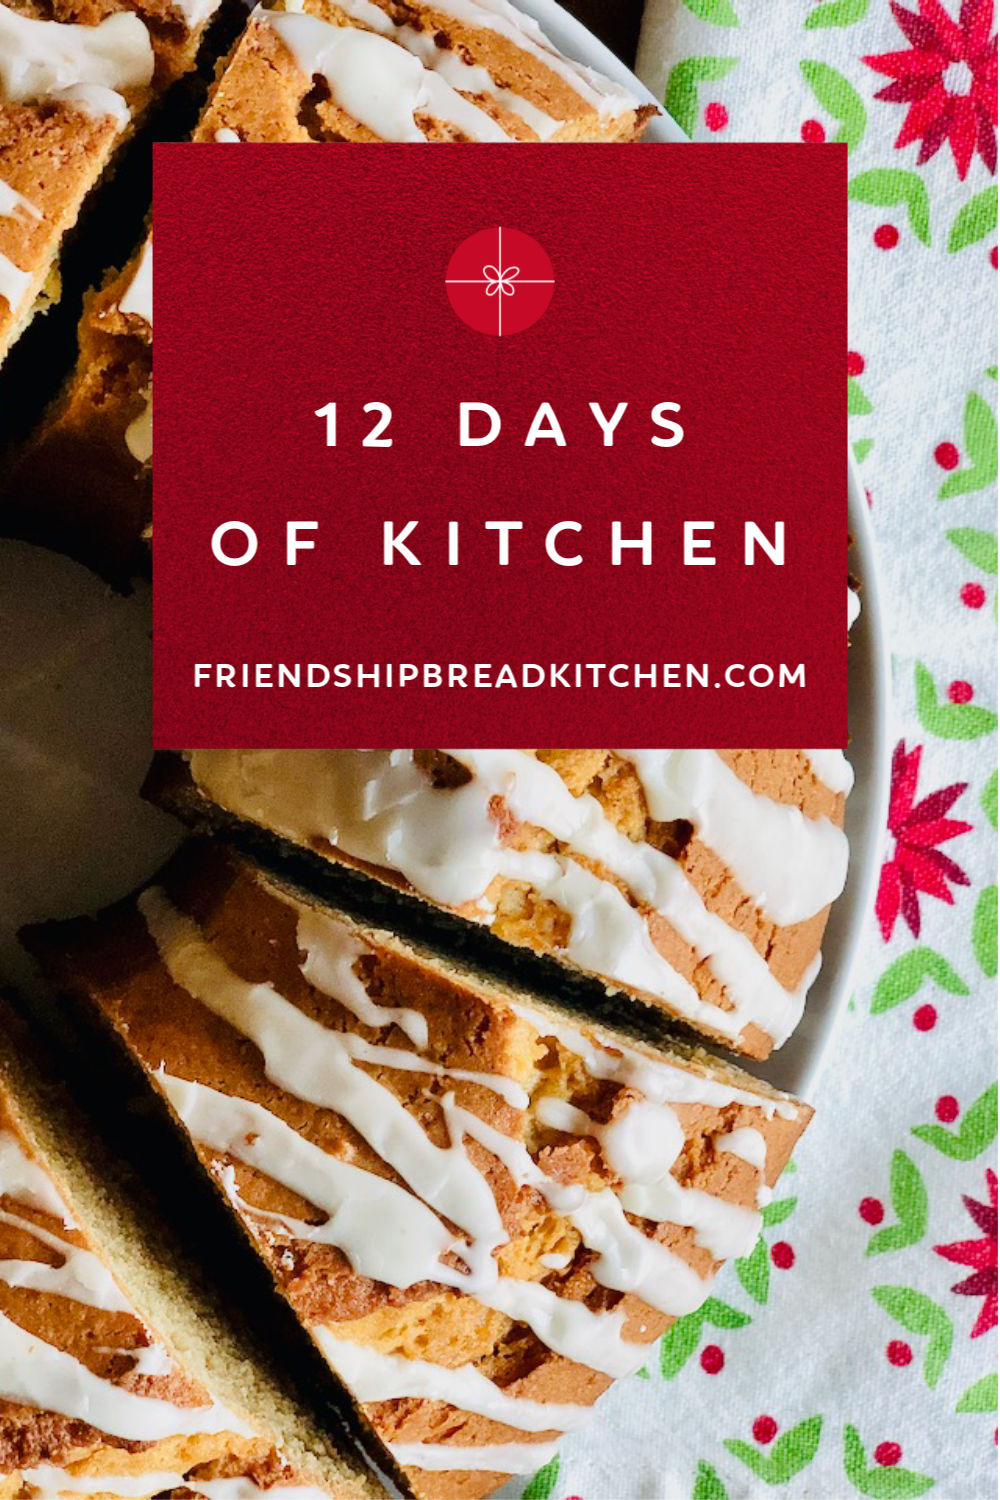 Day 9 of the 12 Days of Kitchen Holiday Giveaway